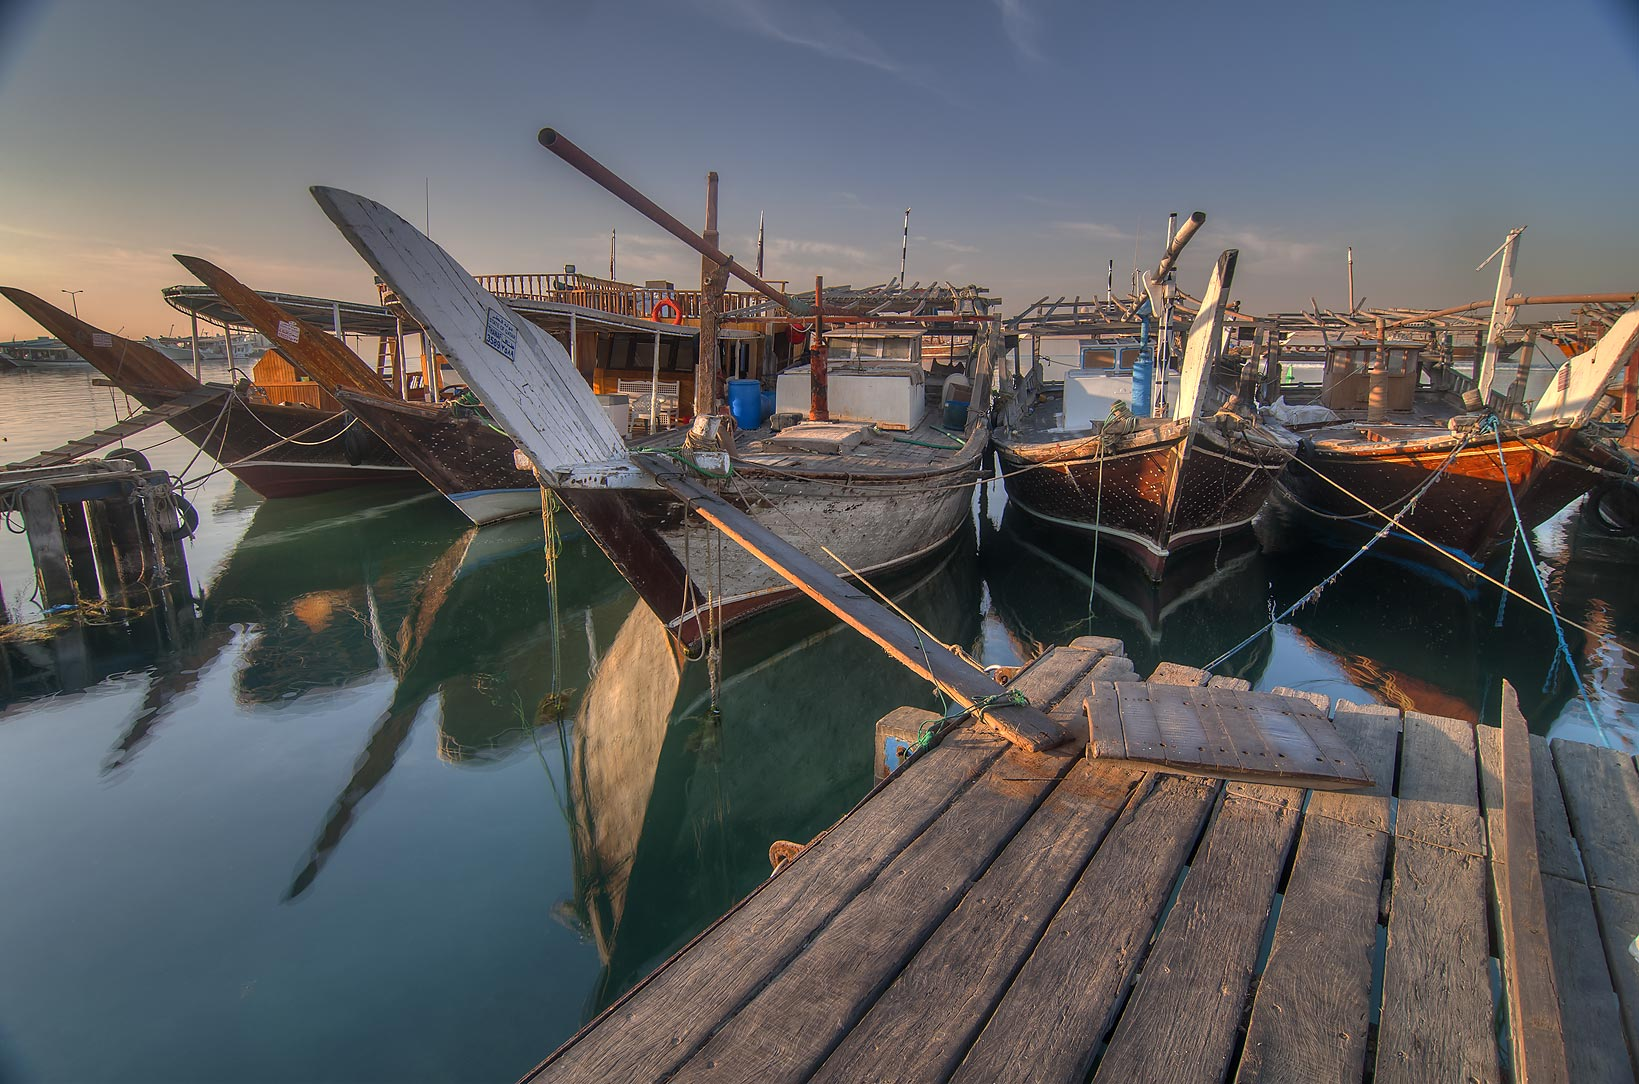 Five dhow fishing boats on a pier in Al Wakra. Qatar